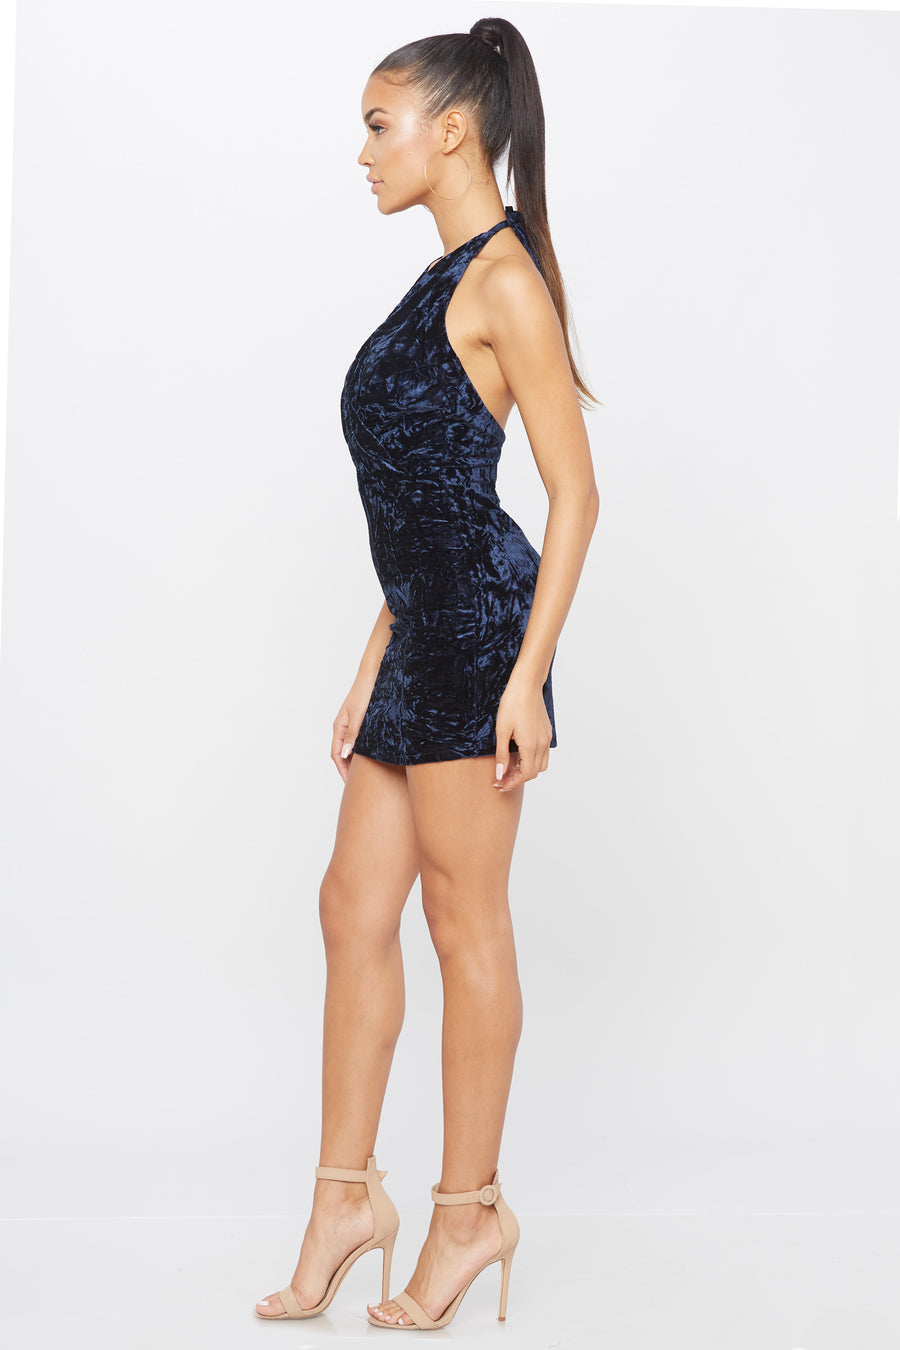 Little Secrets Dress - HoneyBum